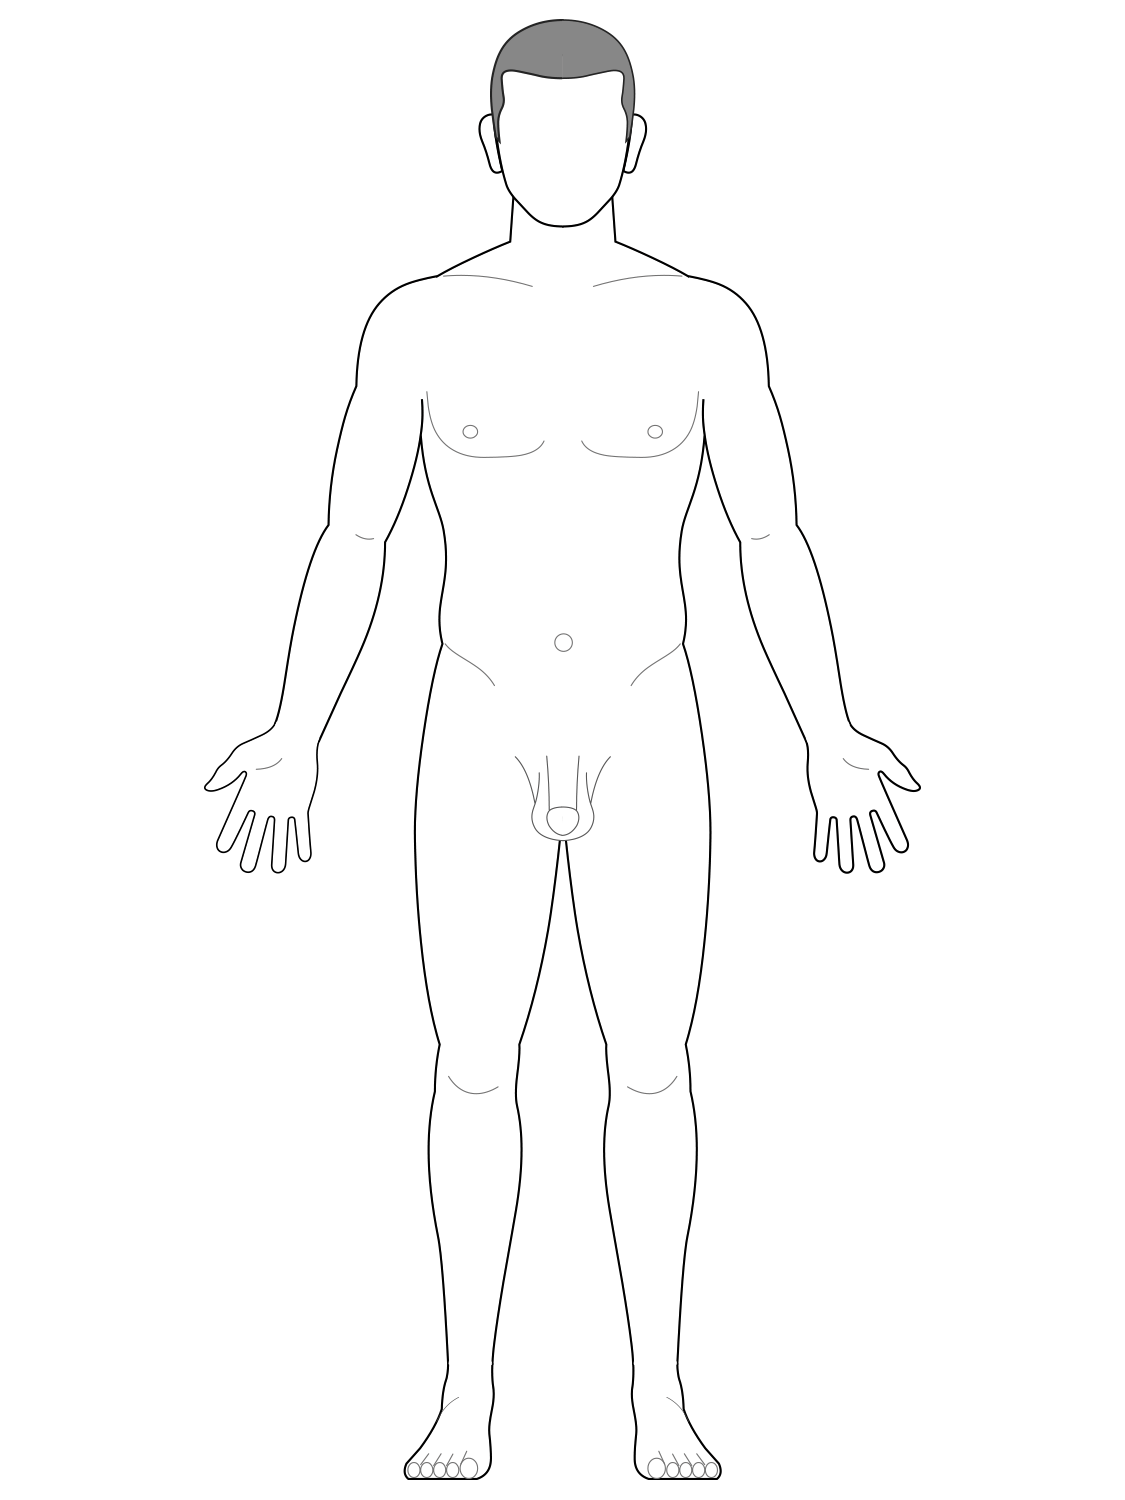 Anatomical position - male